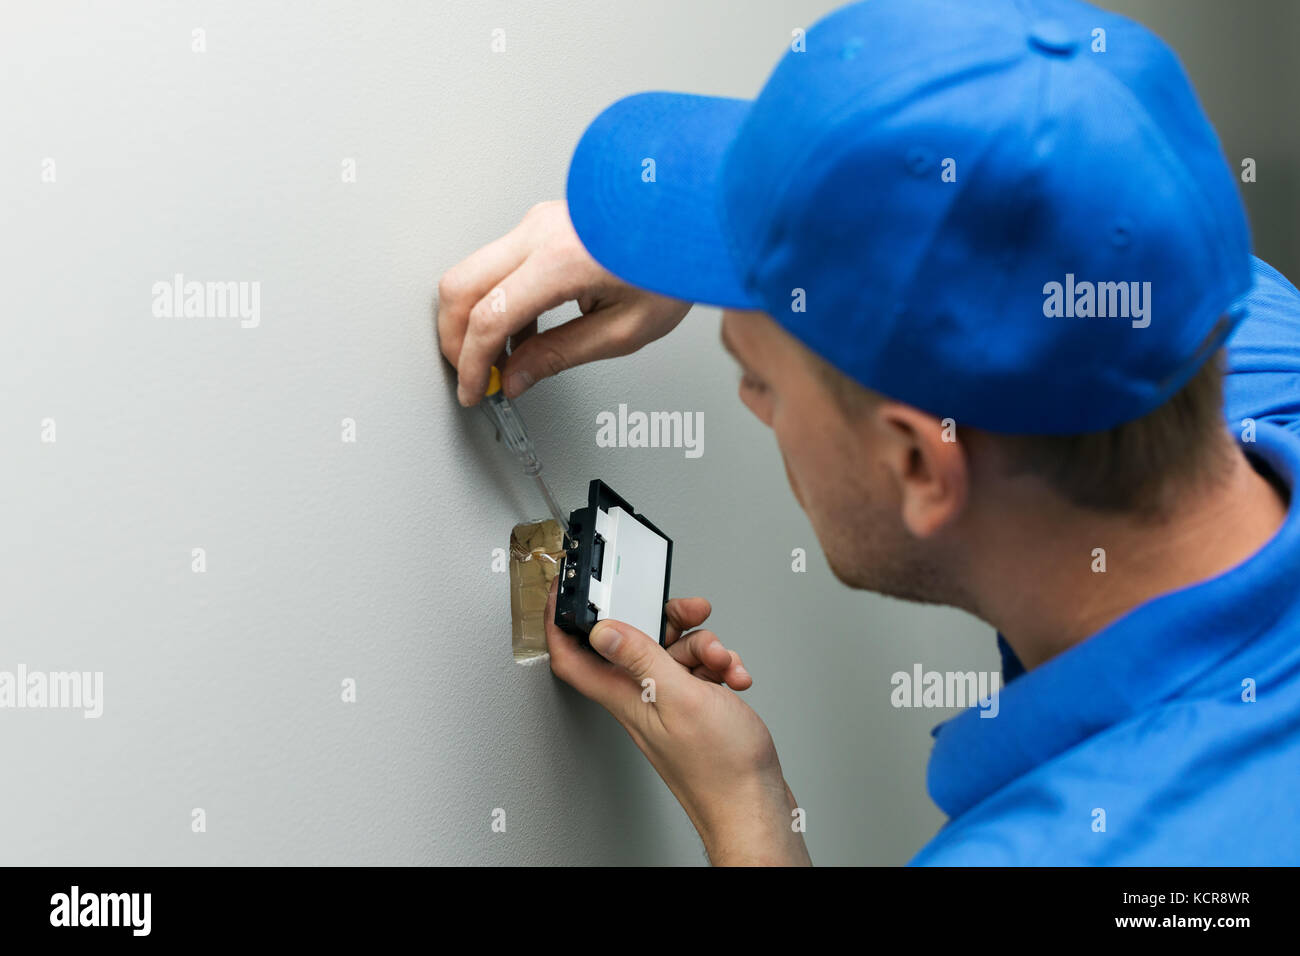 Electrical Switch Room Stock Photos & Electrical Switch Room Stock ...